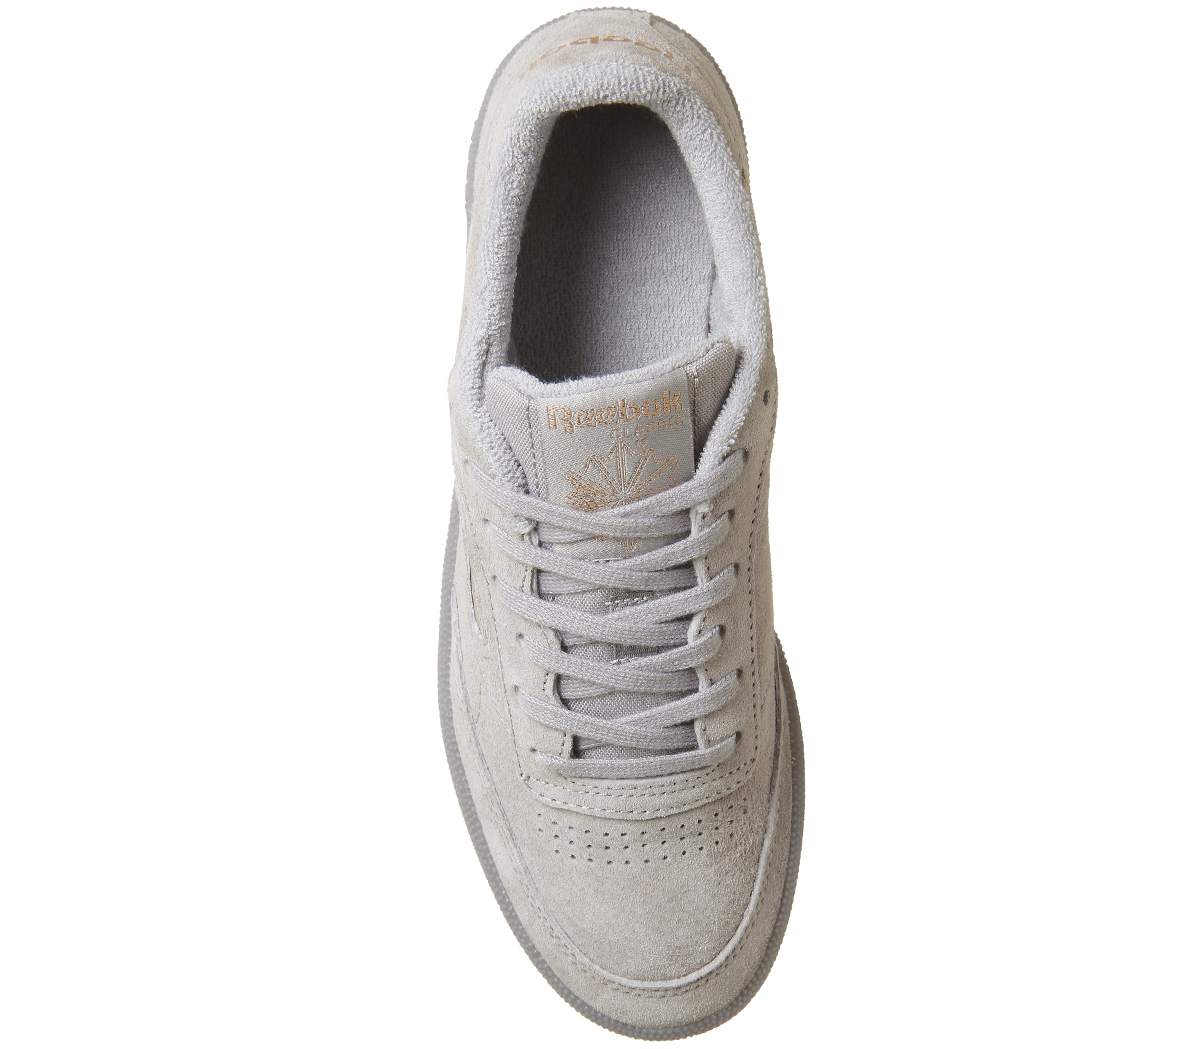 Donna Reebok Club C 85 GOLD Trainers SKULL GREY ROSE GOLD 85 EXCLUSIVE Trainers Shoes 959269